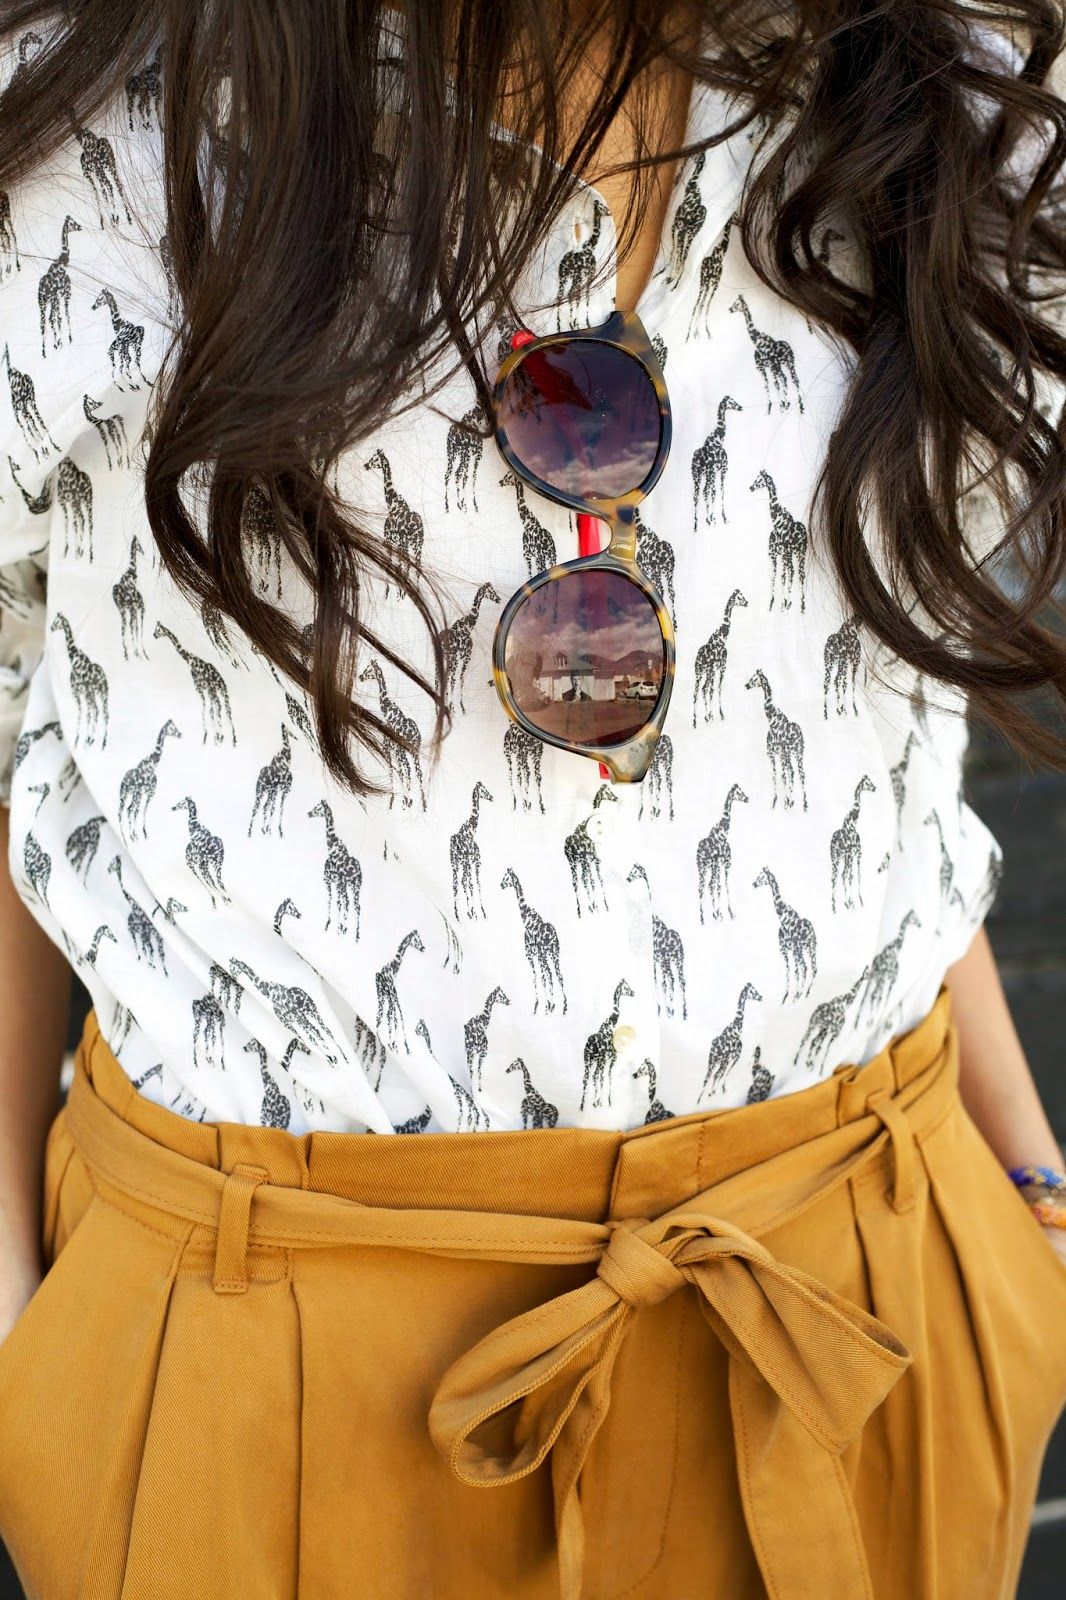 this shirt is so cute! in love with the giraffe print- perfect for mixing patterns.